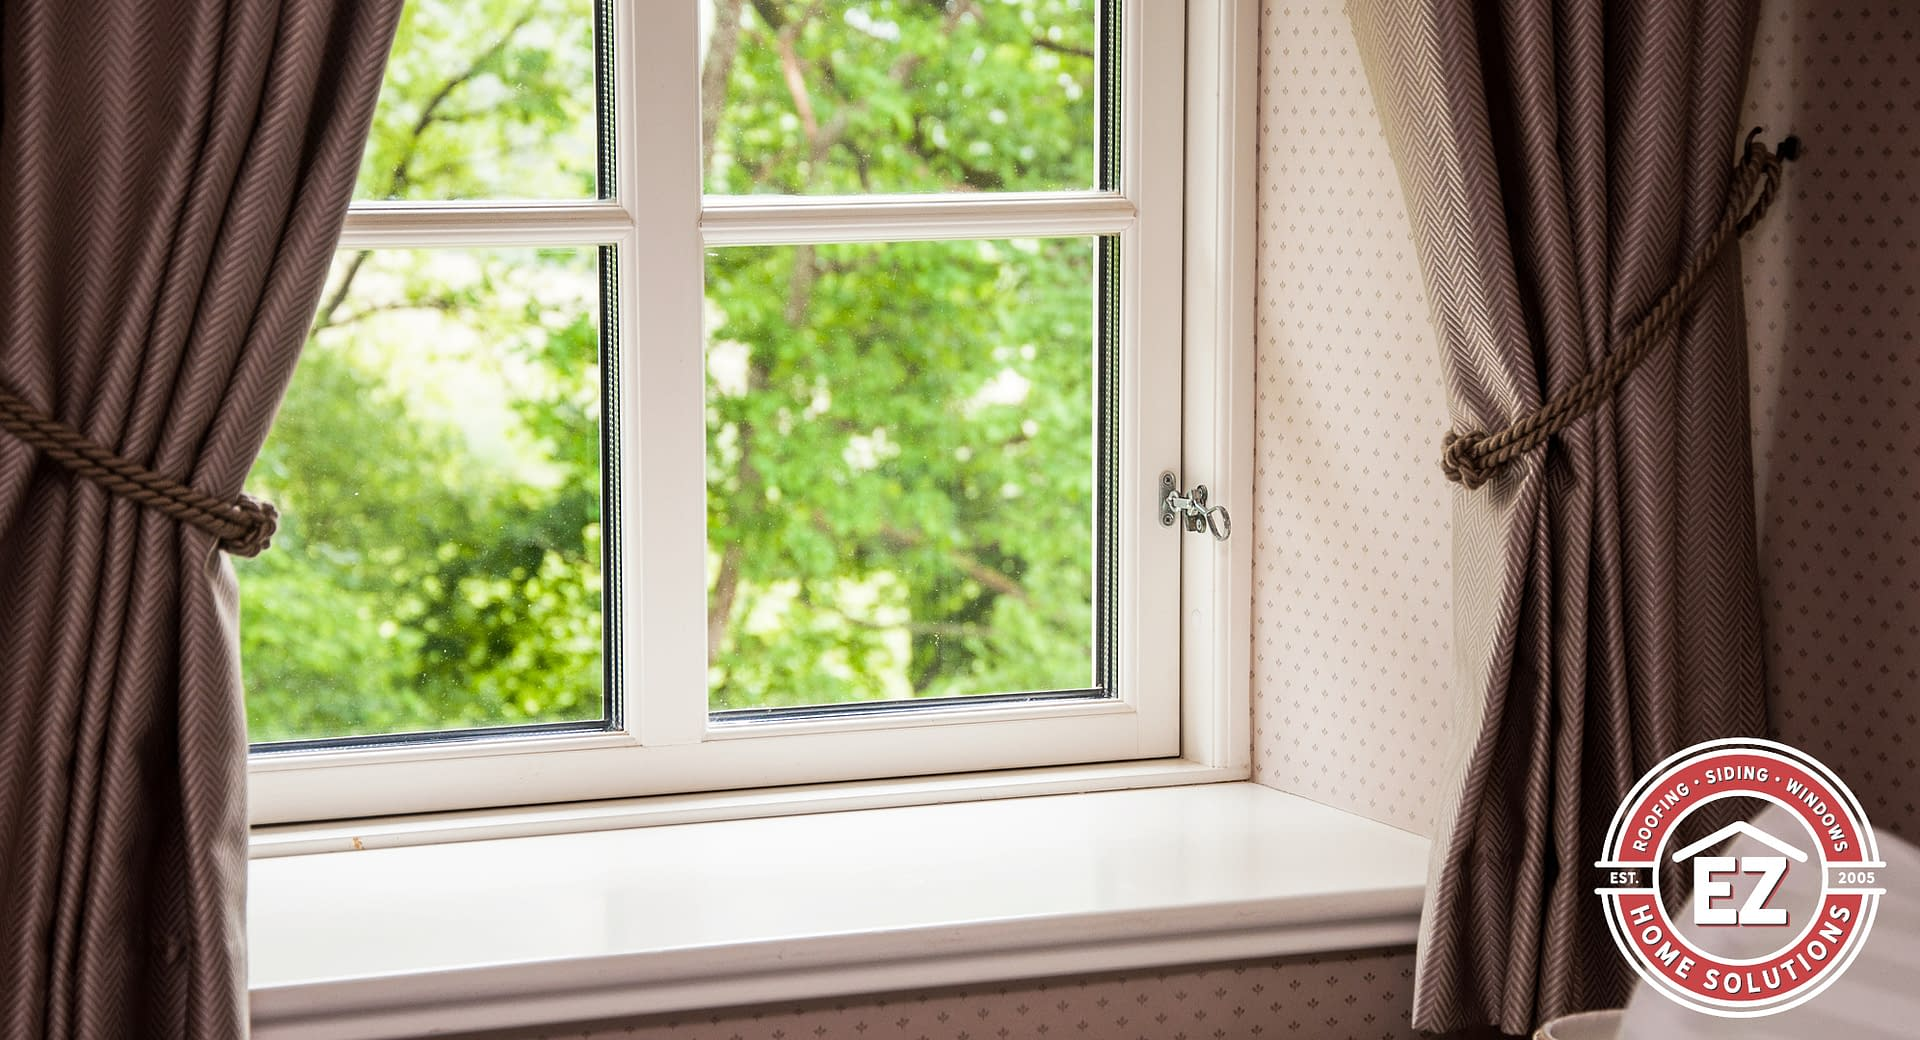 5 Signs of Wear and Tear That Require a Window Replacement